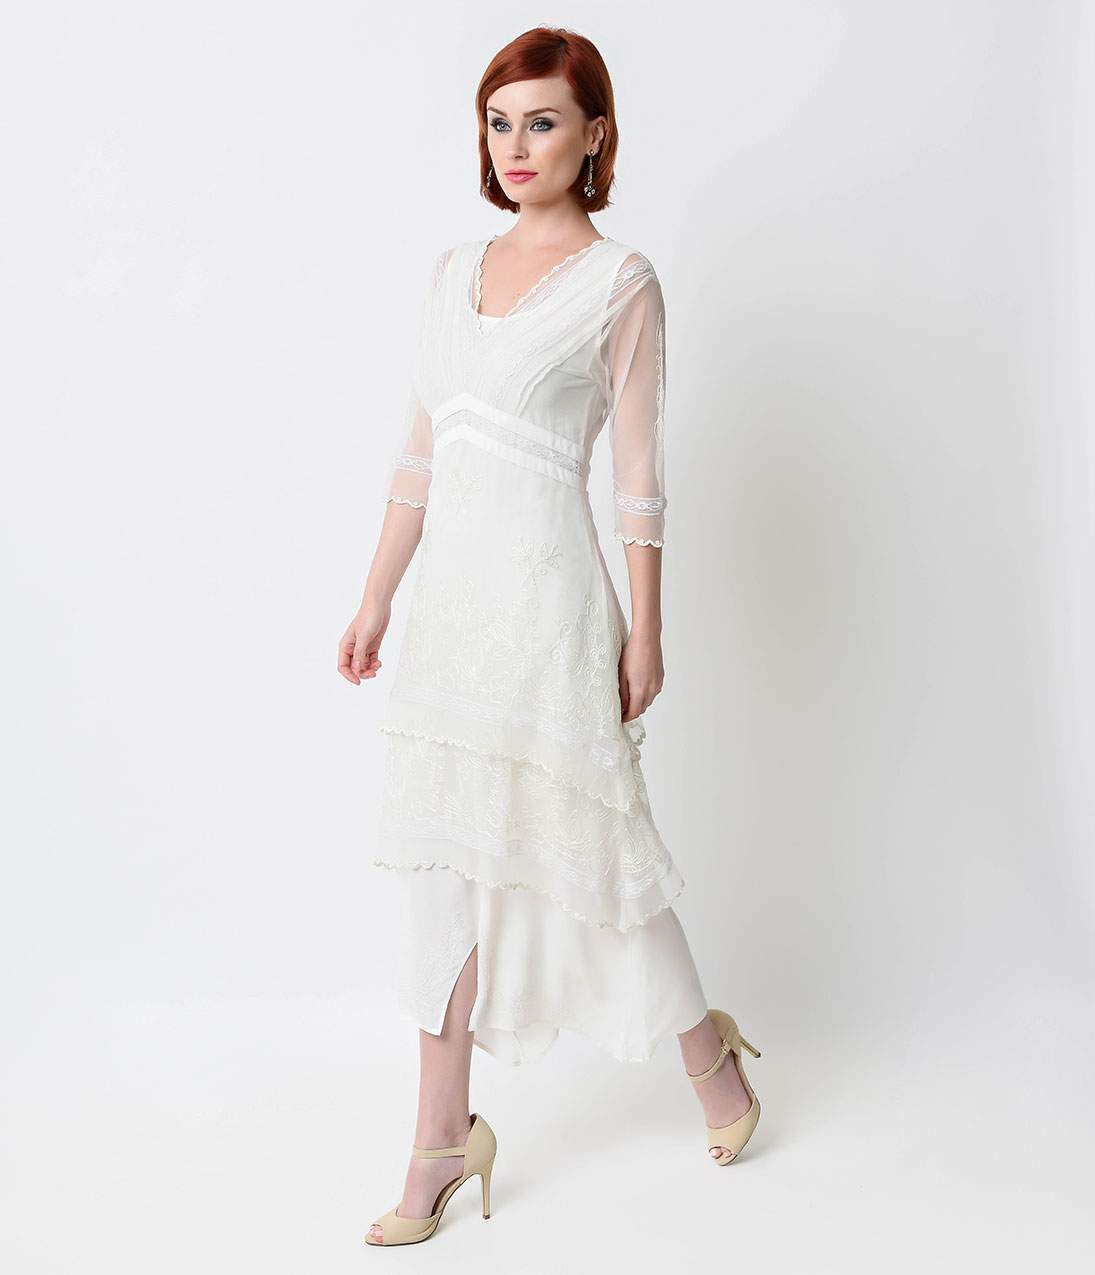 1930s Dresses | 30s Art Deco Dress Nataya 1930S White Embroidered Titanic Tulle Tea Length Dress $99.00 AT vintagedancer.com